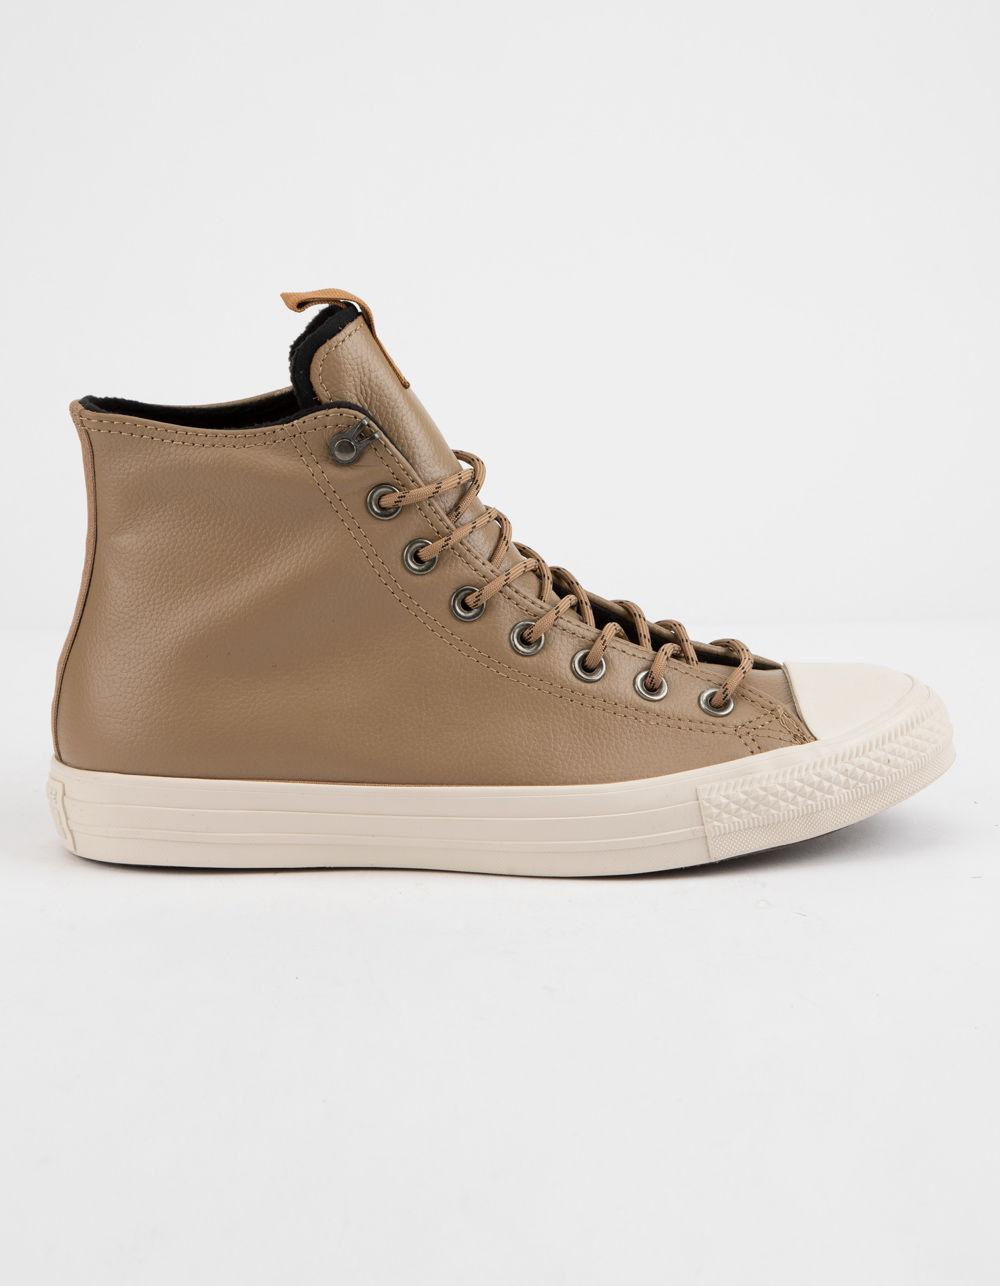 ee1c111baa54b0 Converse. Men s Chuck Taylor All Star Leather Teak   Driftwood High Top  Shoes